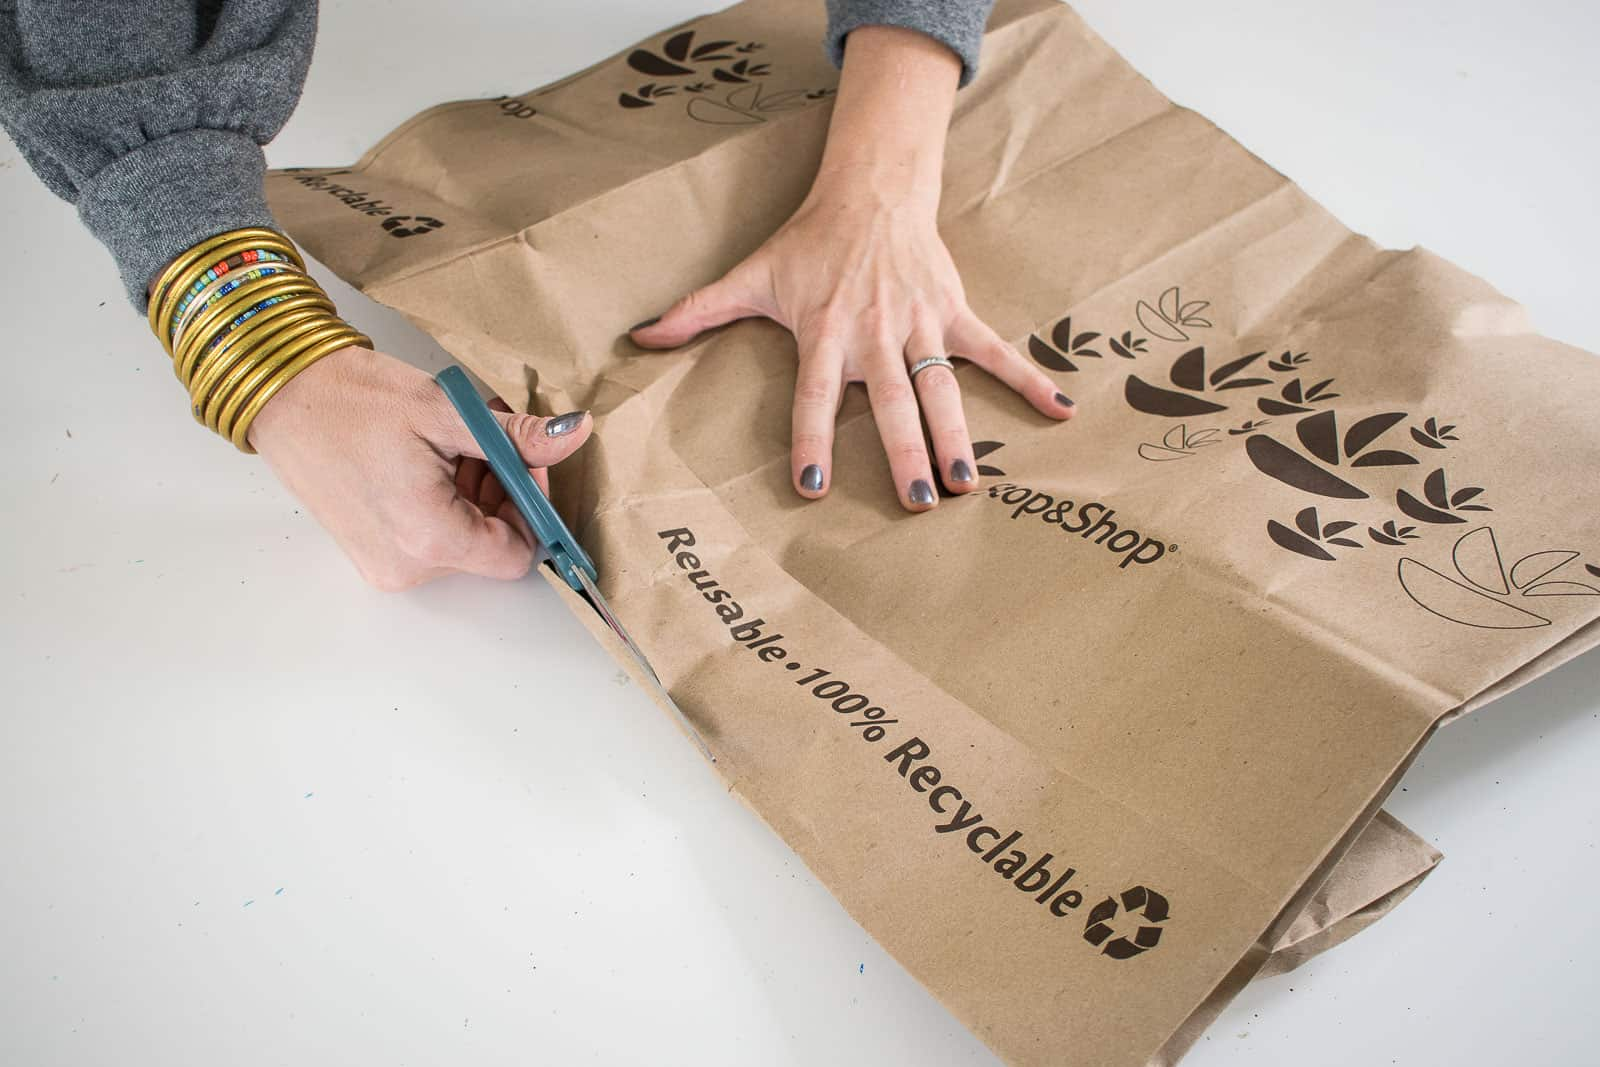 cut open the paper bags